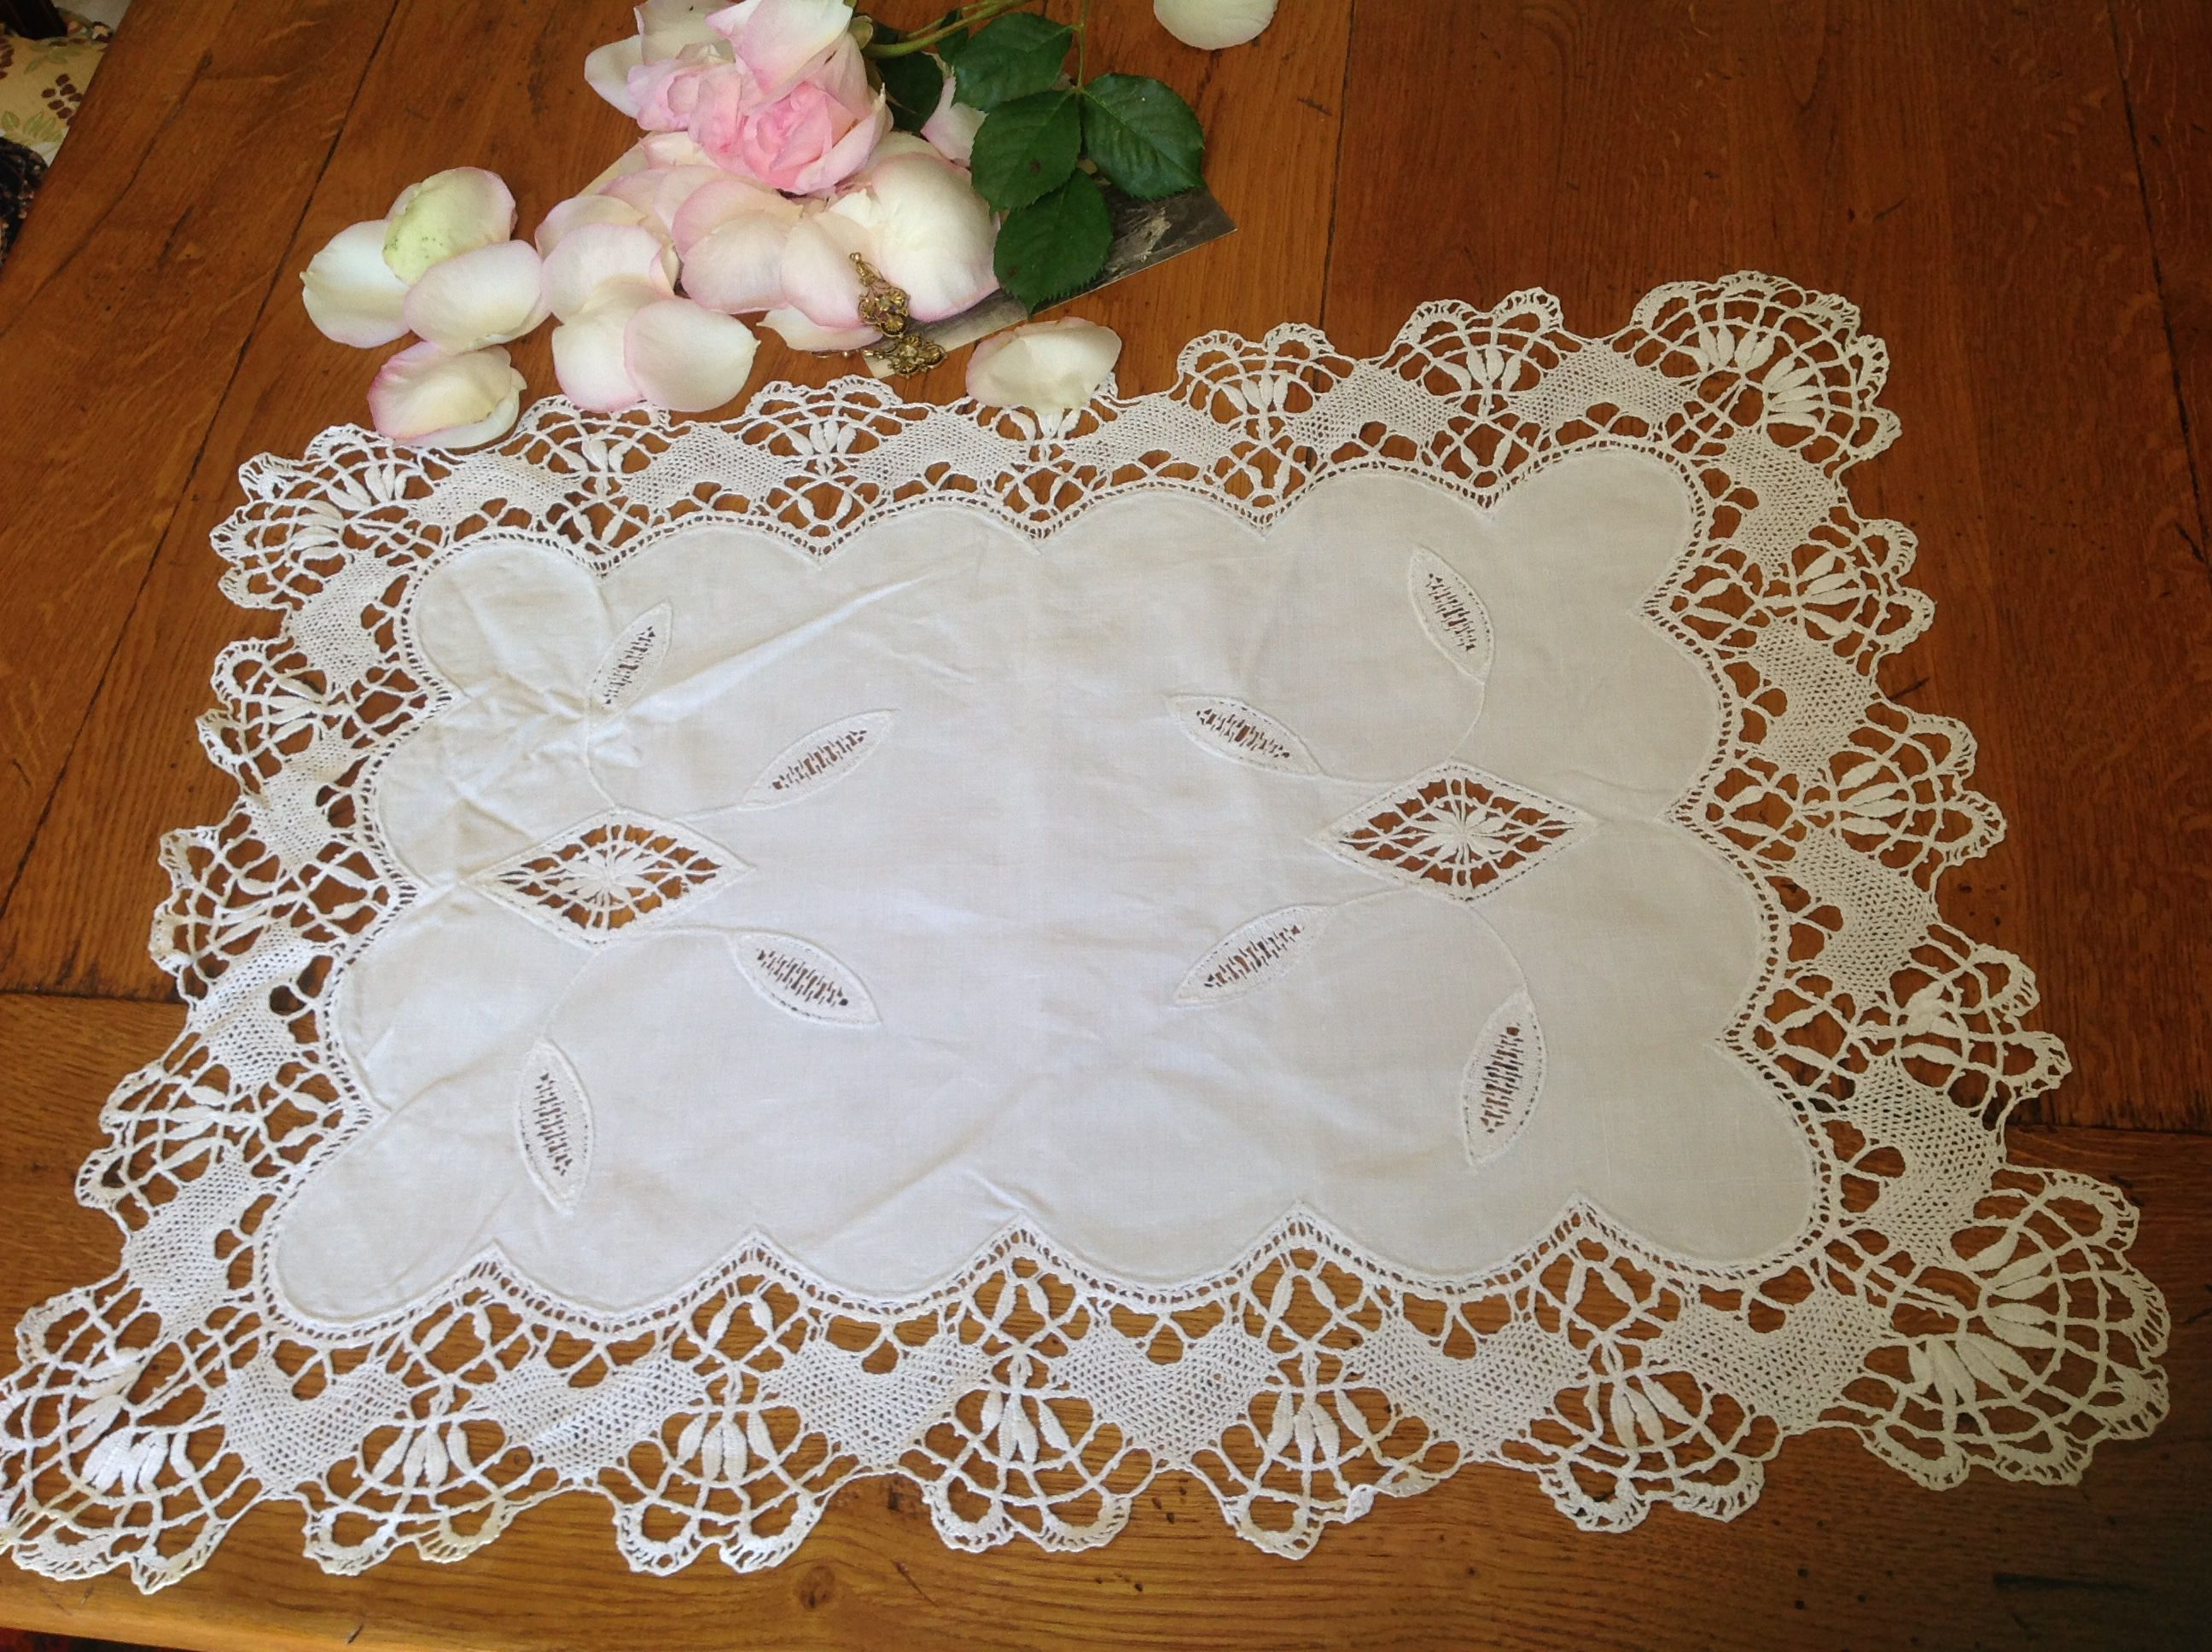 dresser dogwood table runners lace p runner